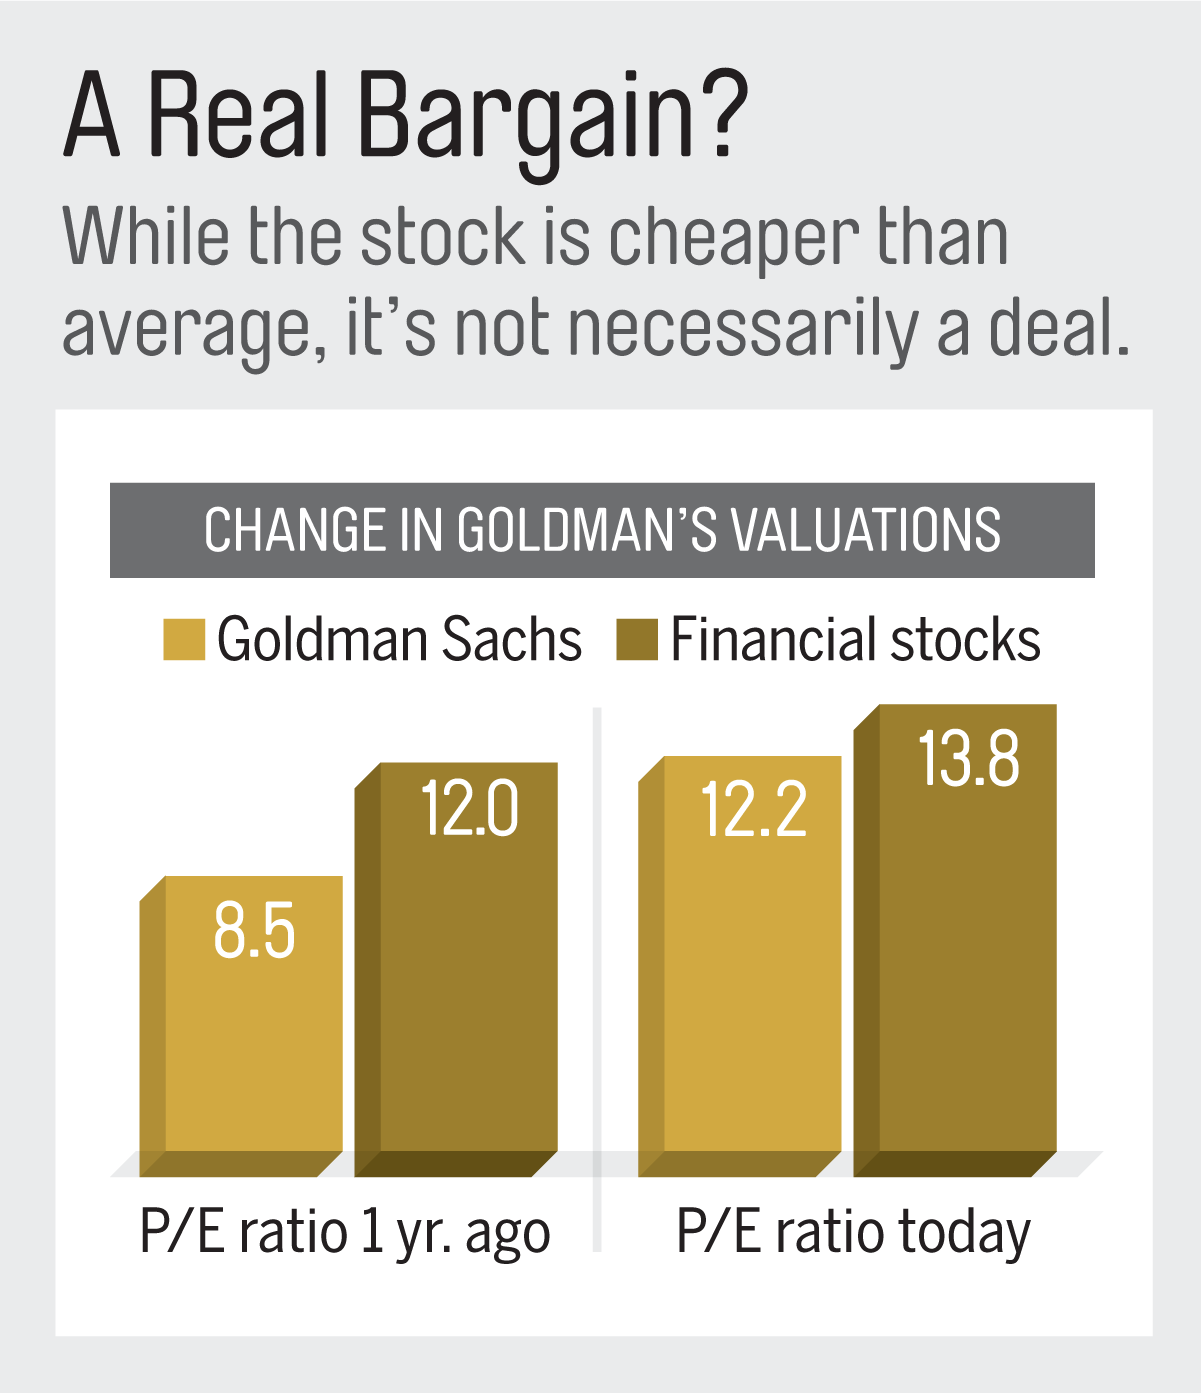 Note: Price/earnings ratios are based on projected profits. Sources: Bloomberg, company filings